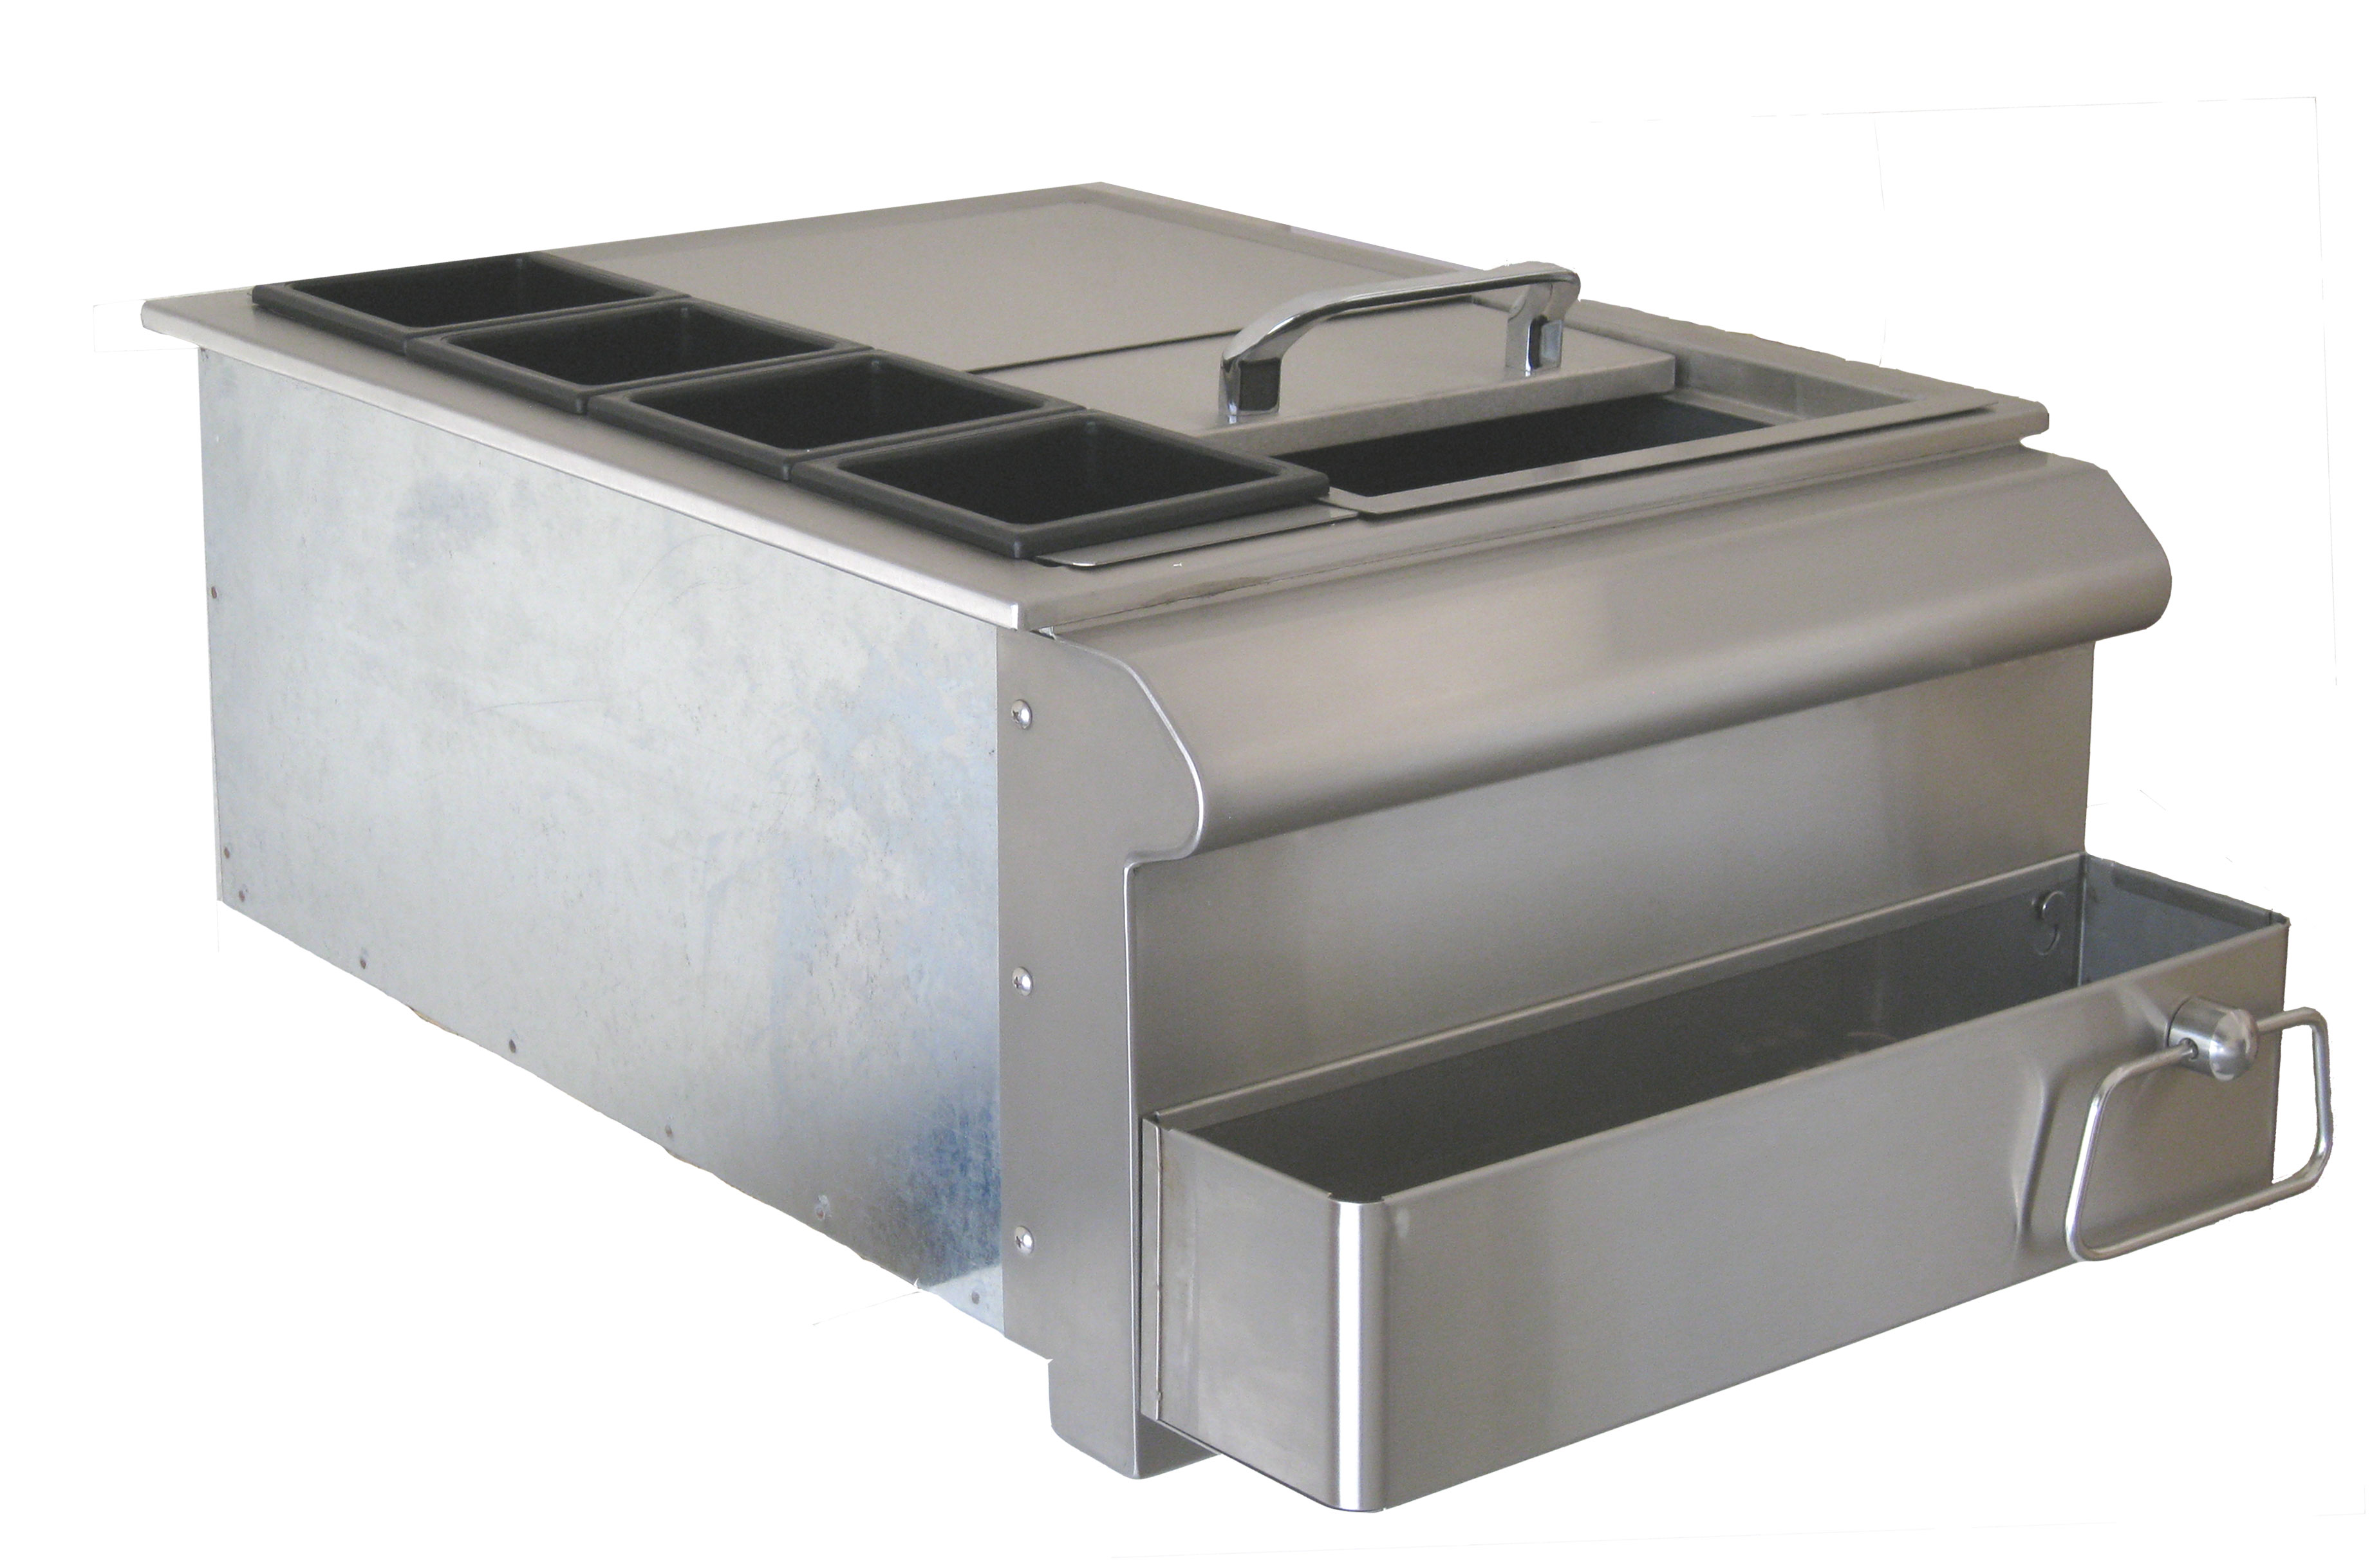 25200-stainless-steel-18-inch-bar-centre.jpg